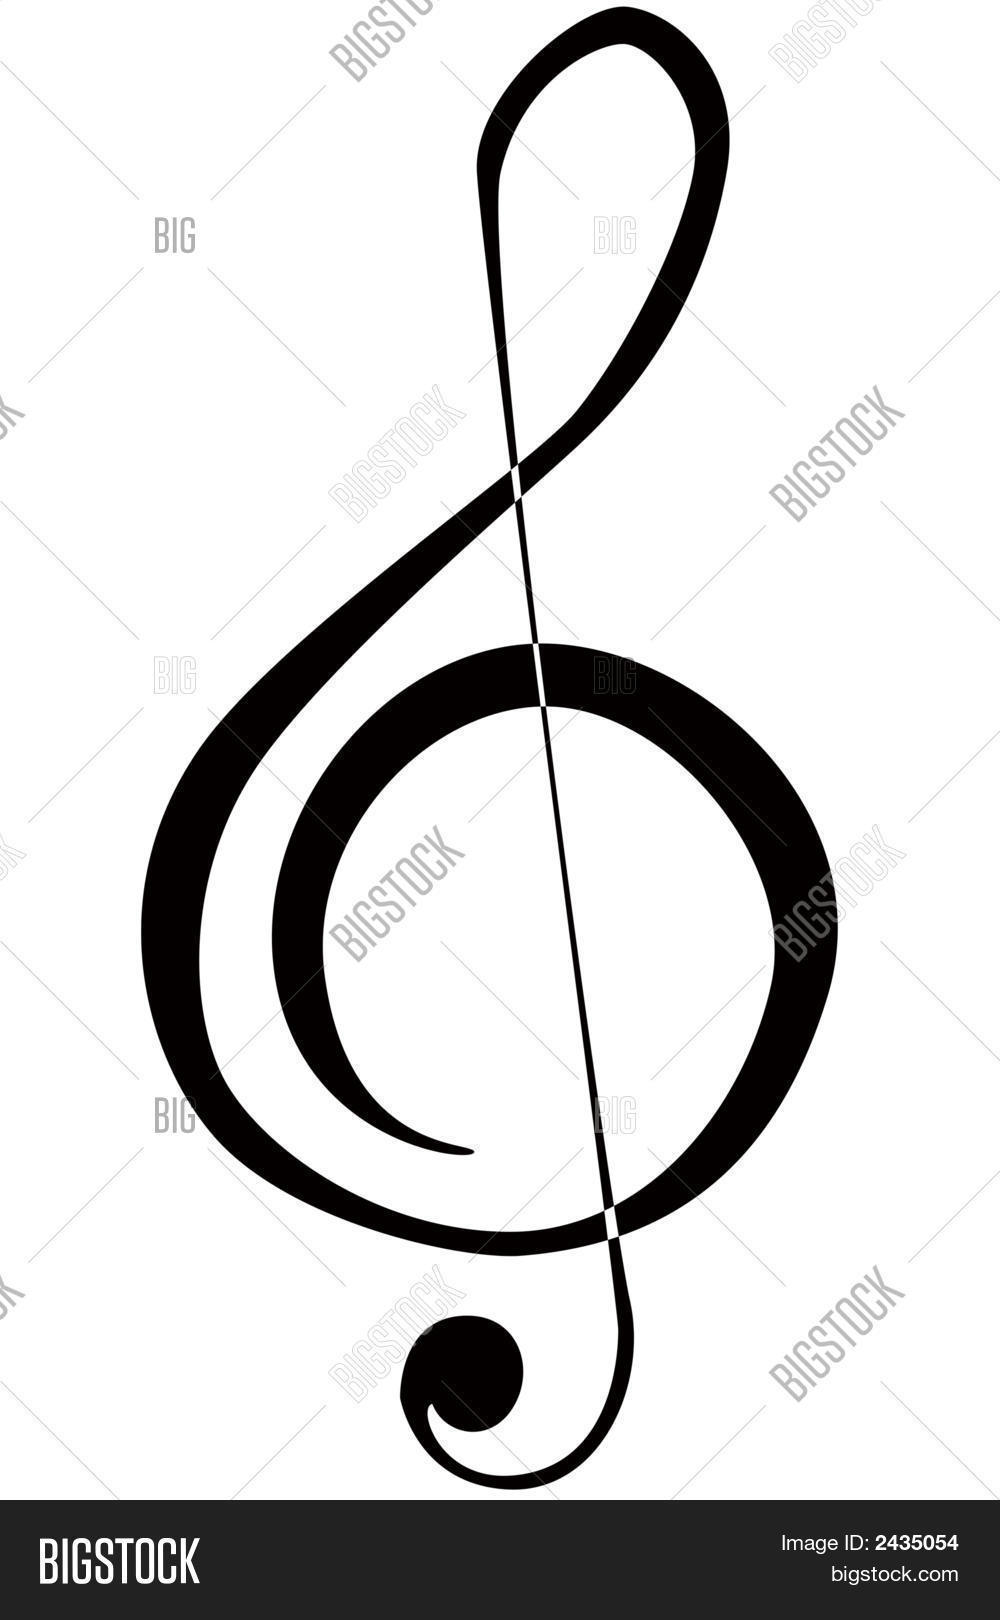 Treble Clef Image Photo Free Trial Bigstock